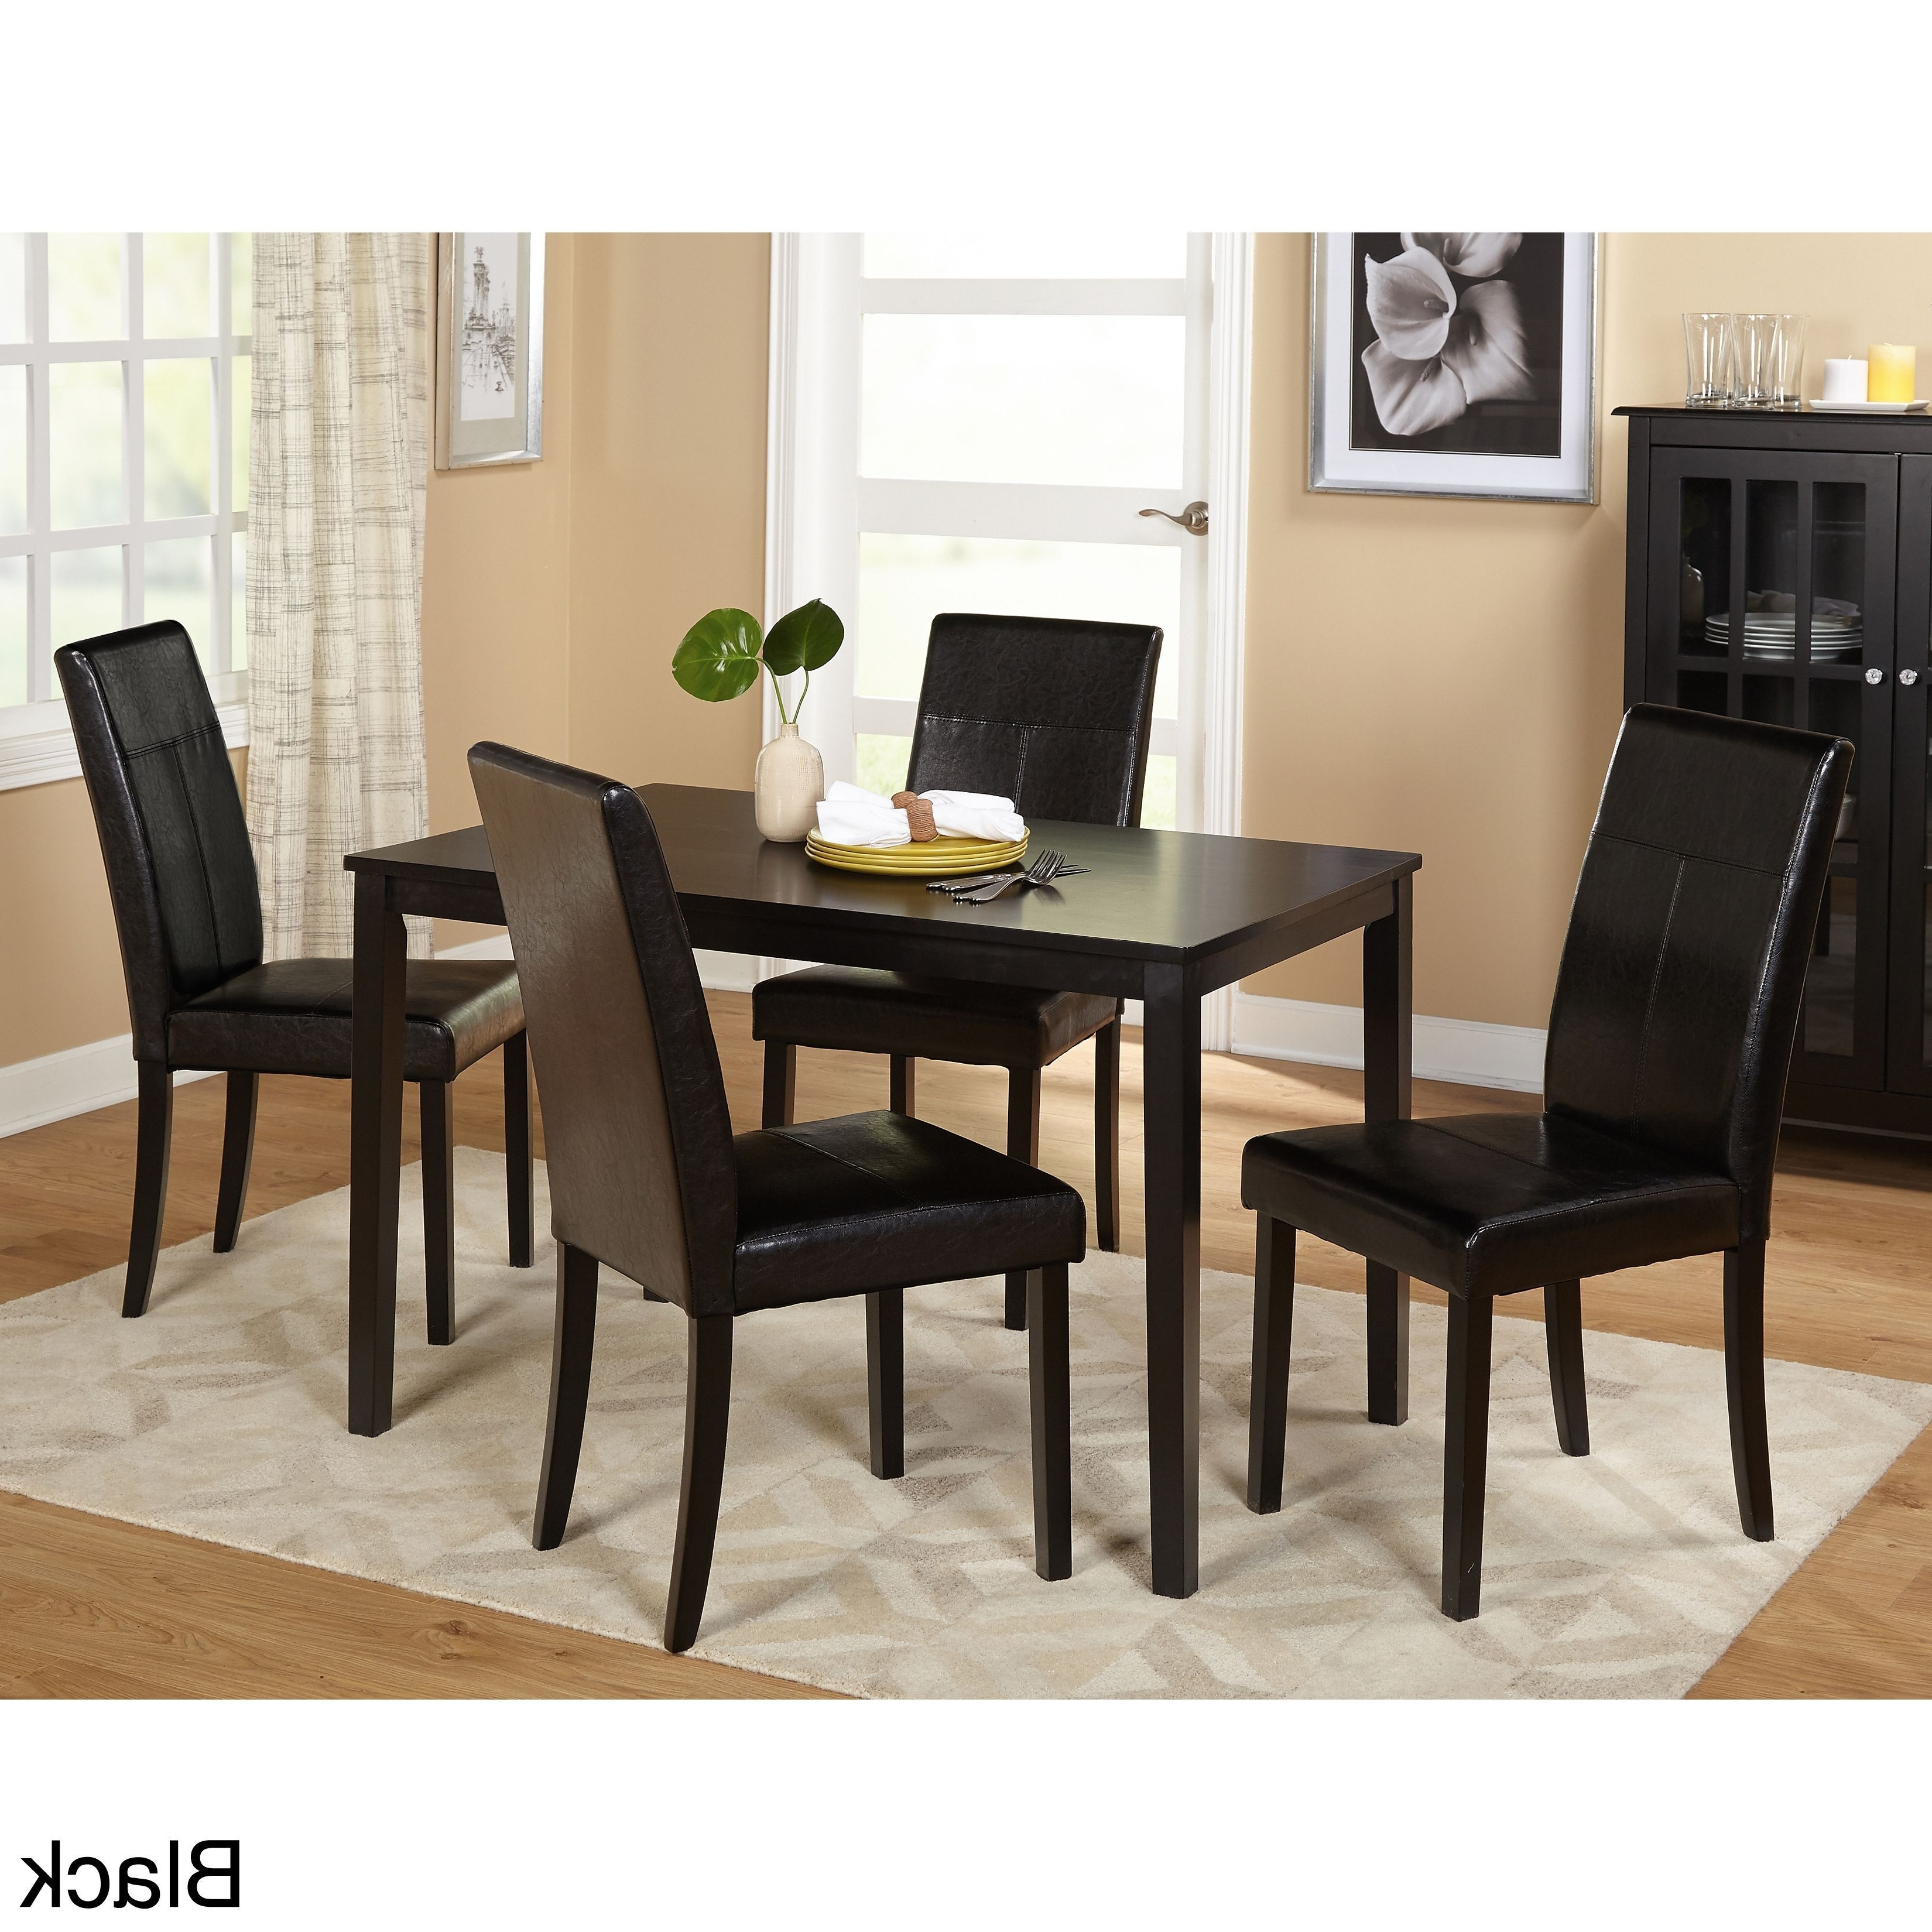 Toby 7 Piece Dining Setorren Ellis Reviews With Regard To Well Known Combs 5 Piece 48 Inch Extension Dining Sets With Mindy Side Chairs (View 10 of 25)